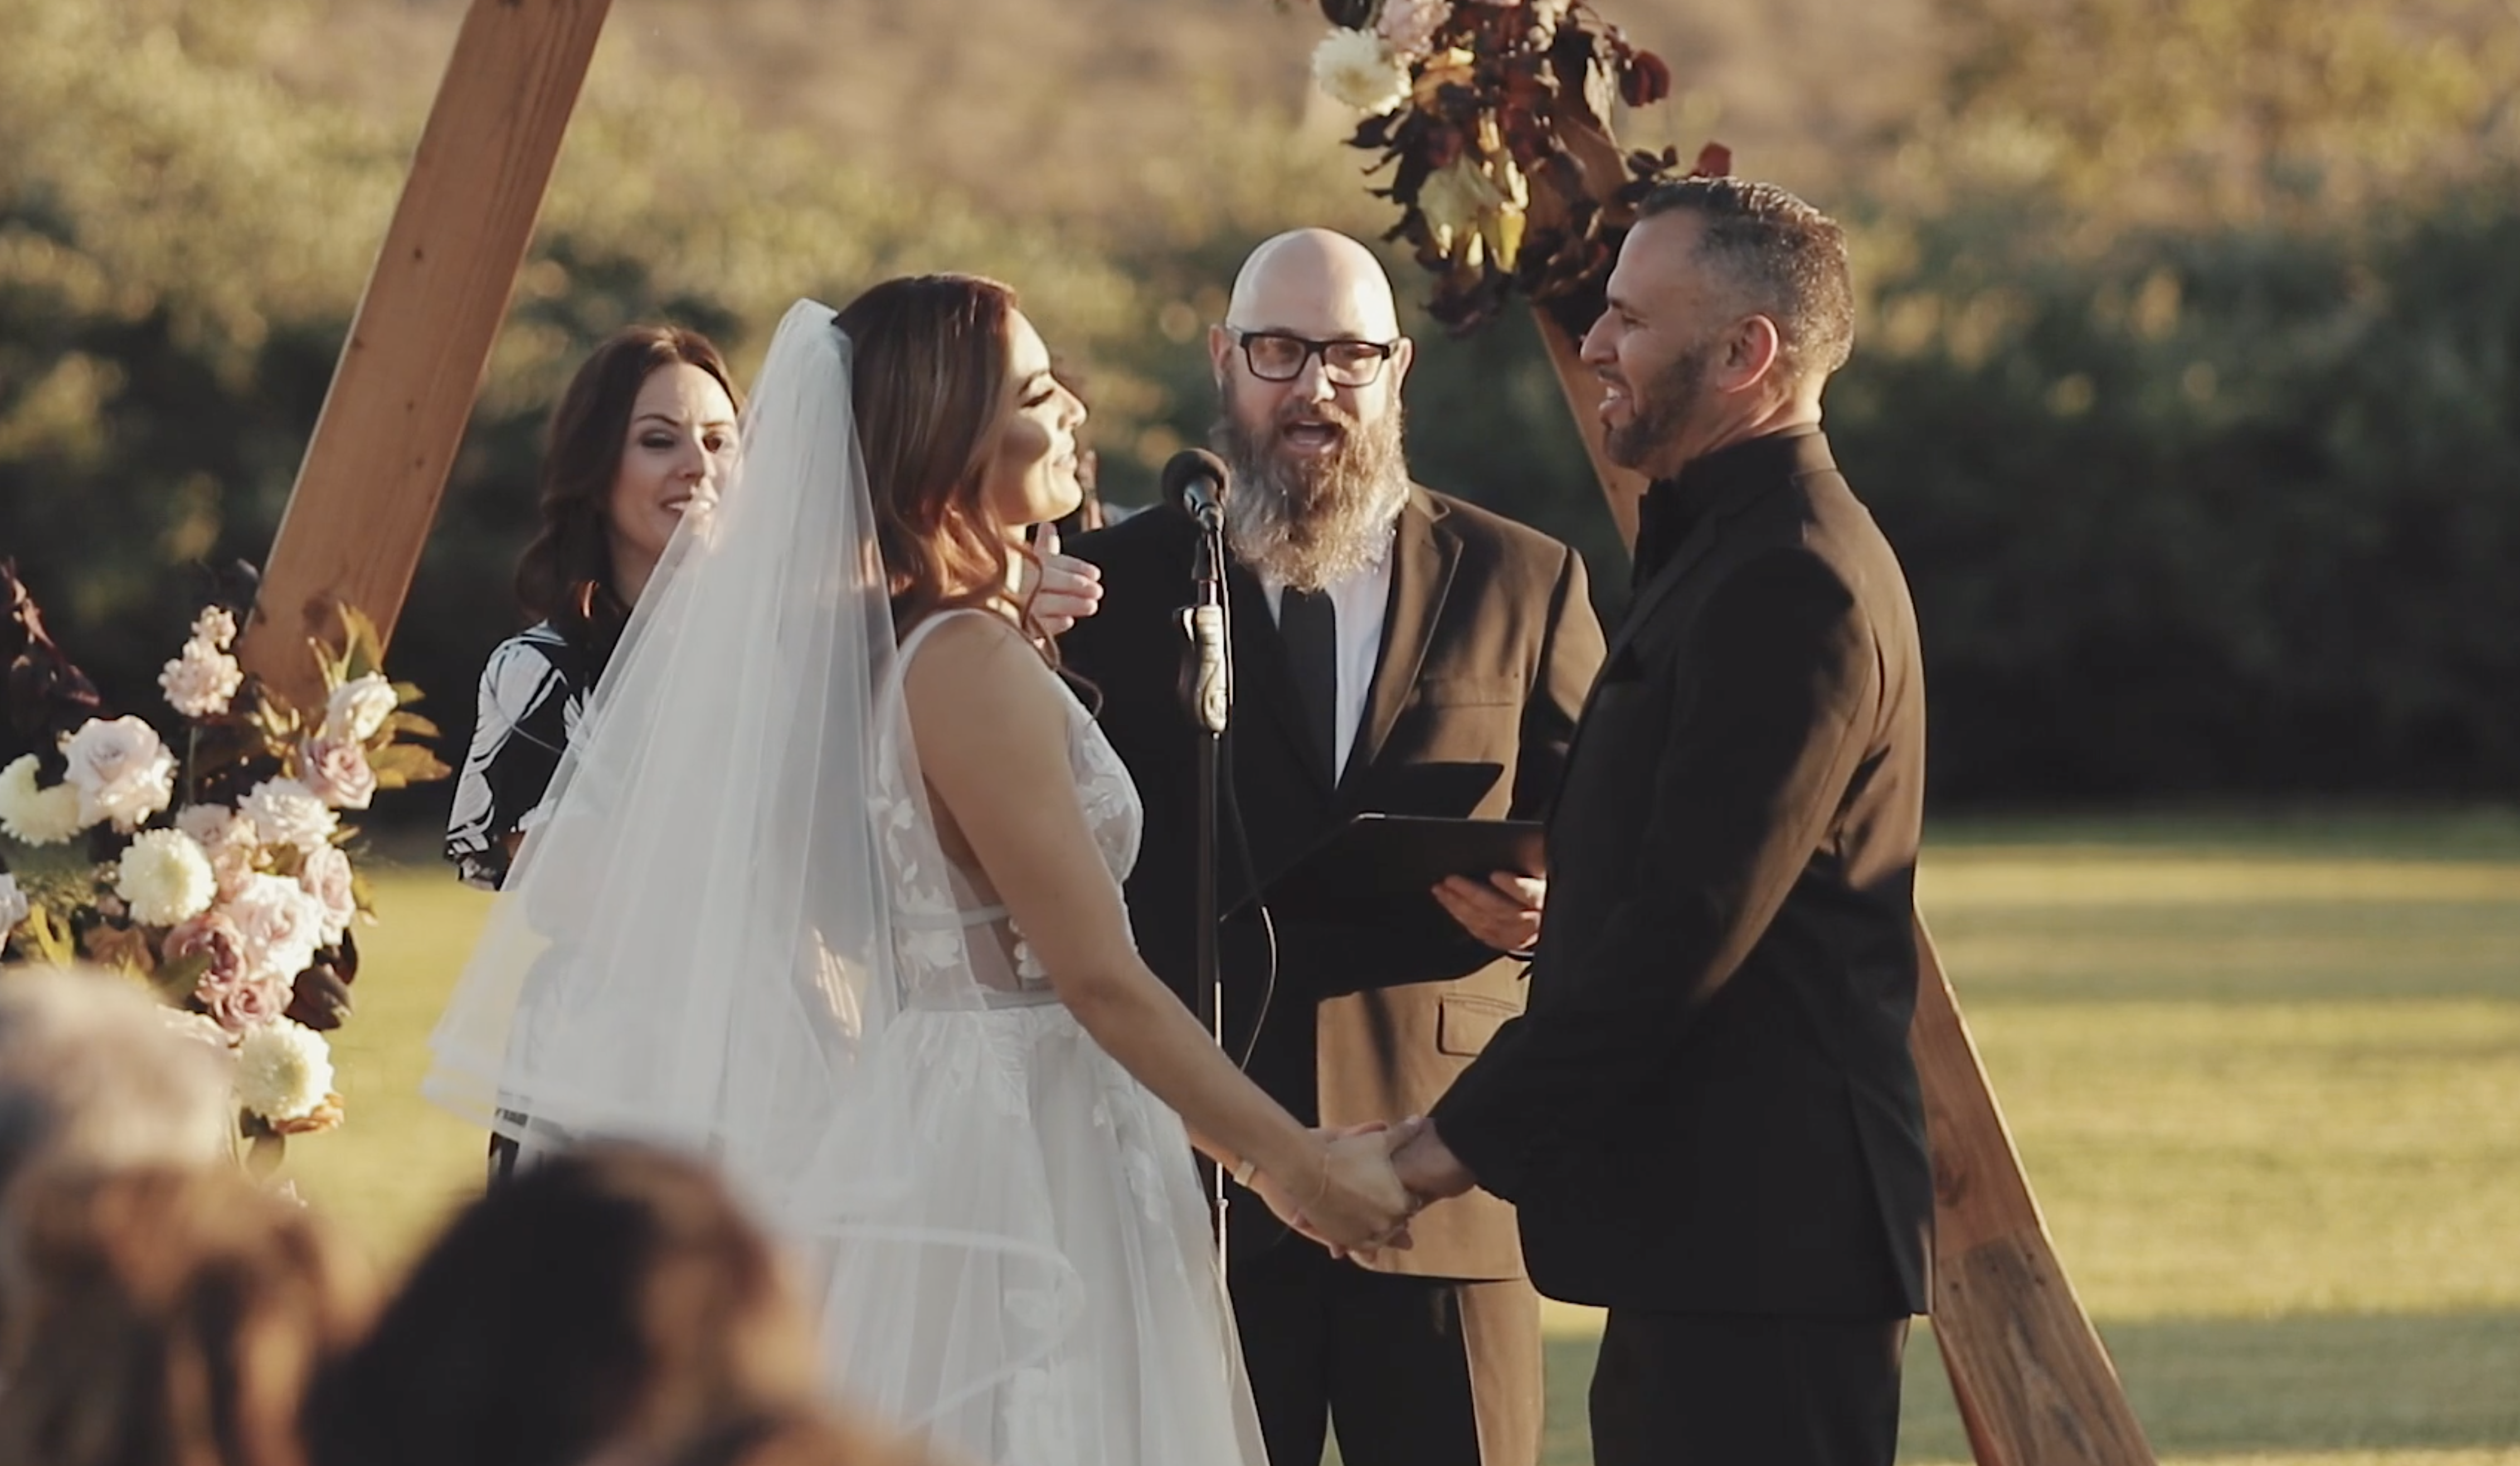 Ethereal Open Air Resort | Catrina & Hector Highlight Film